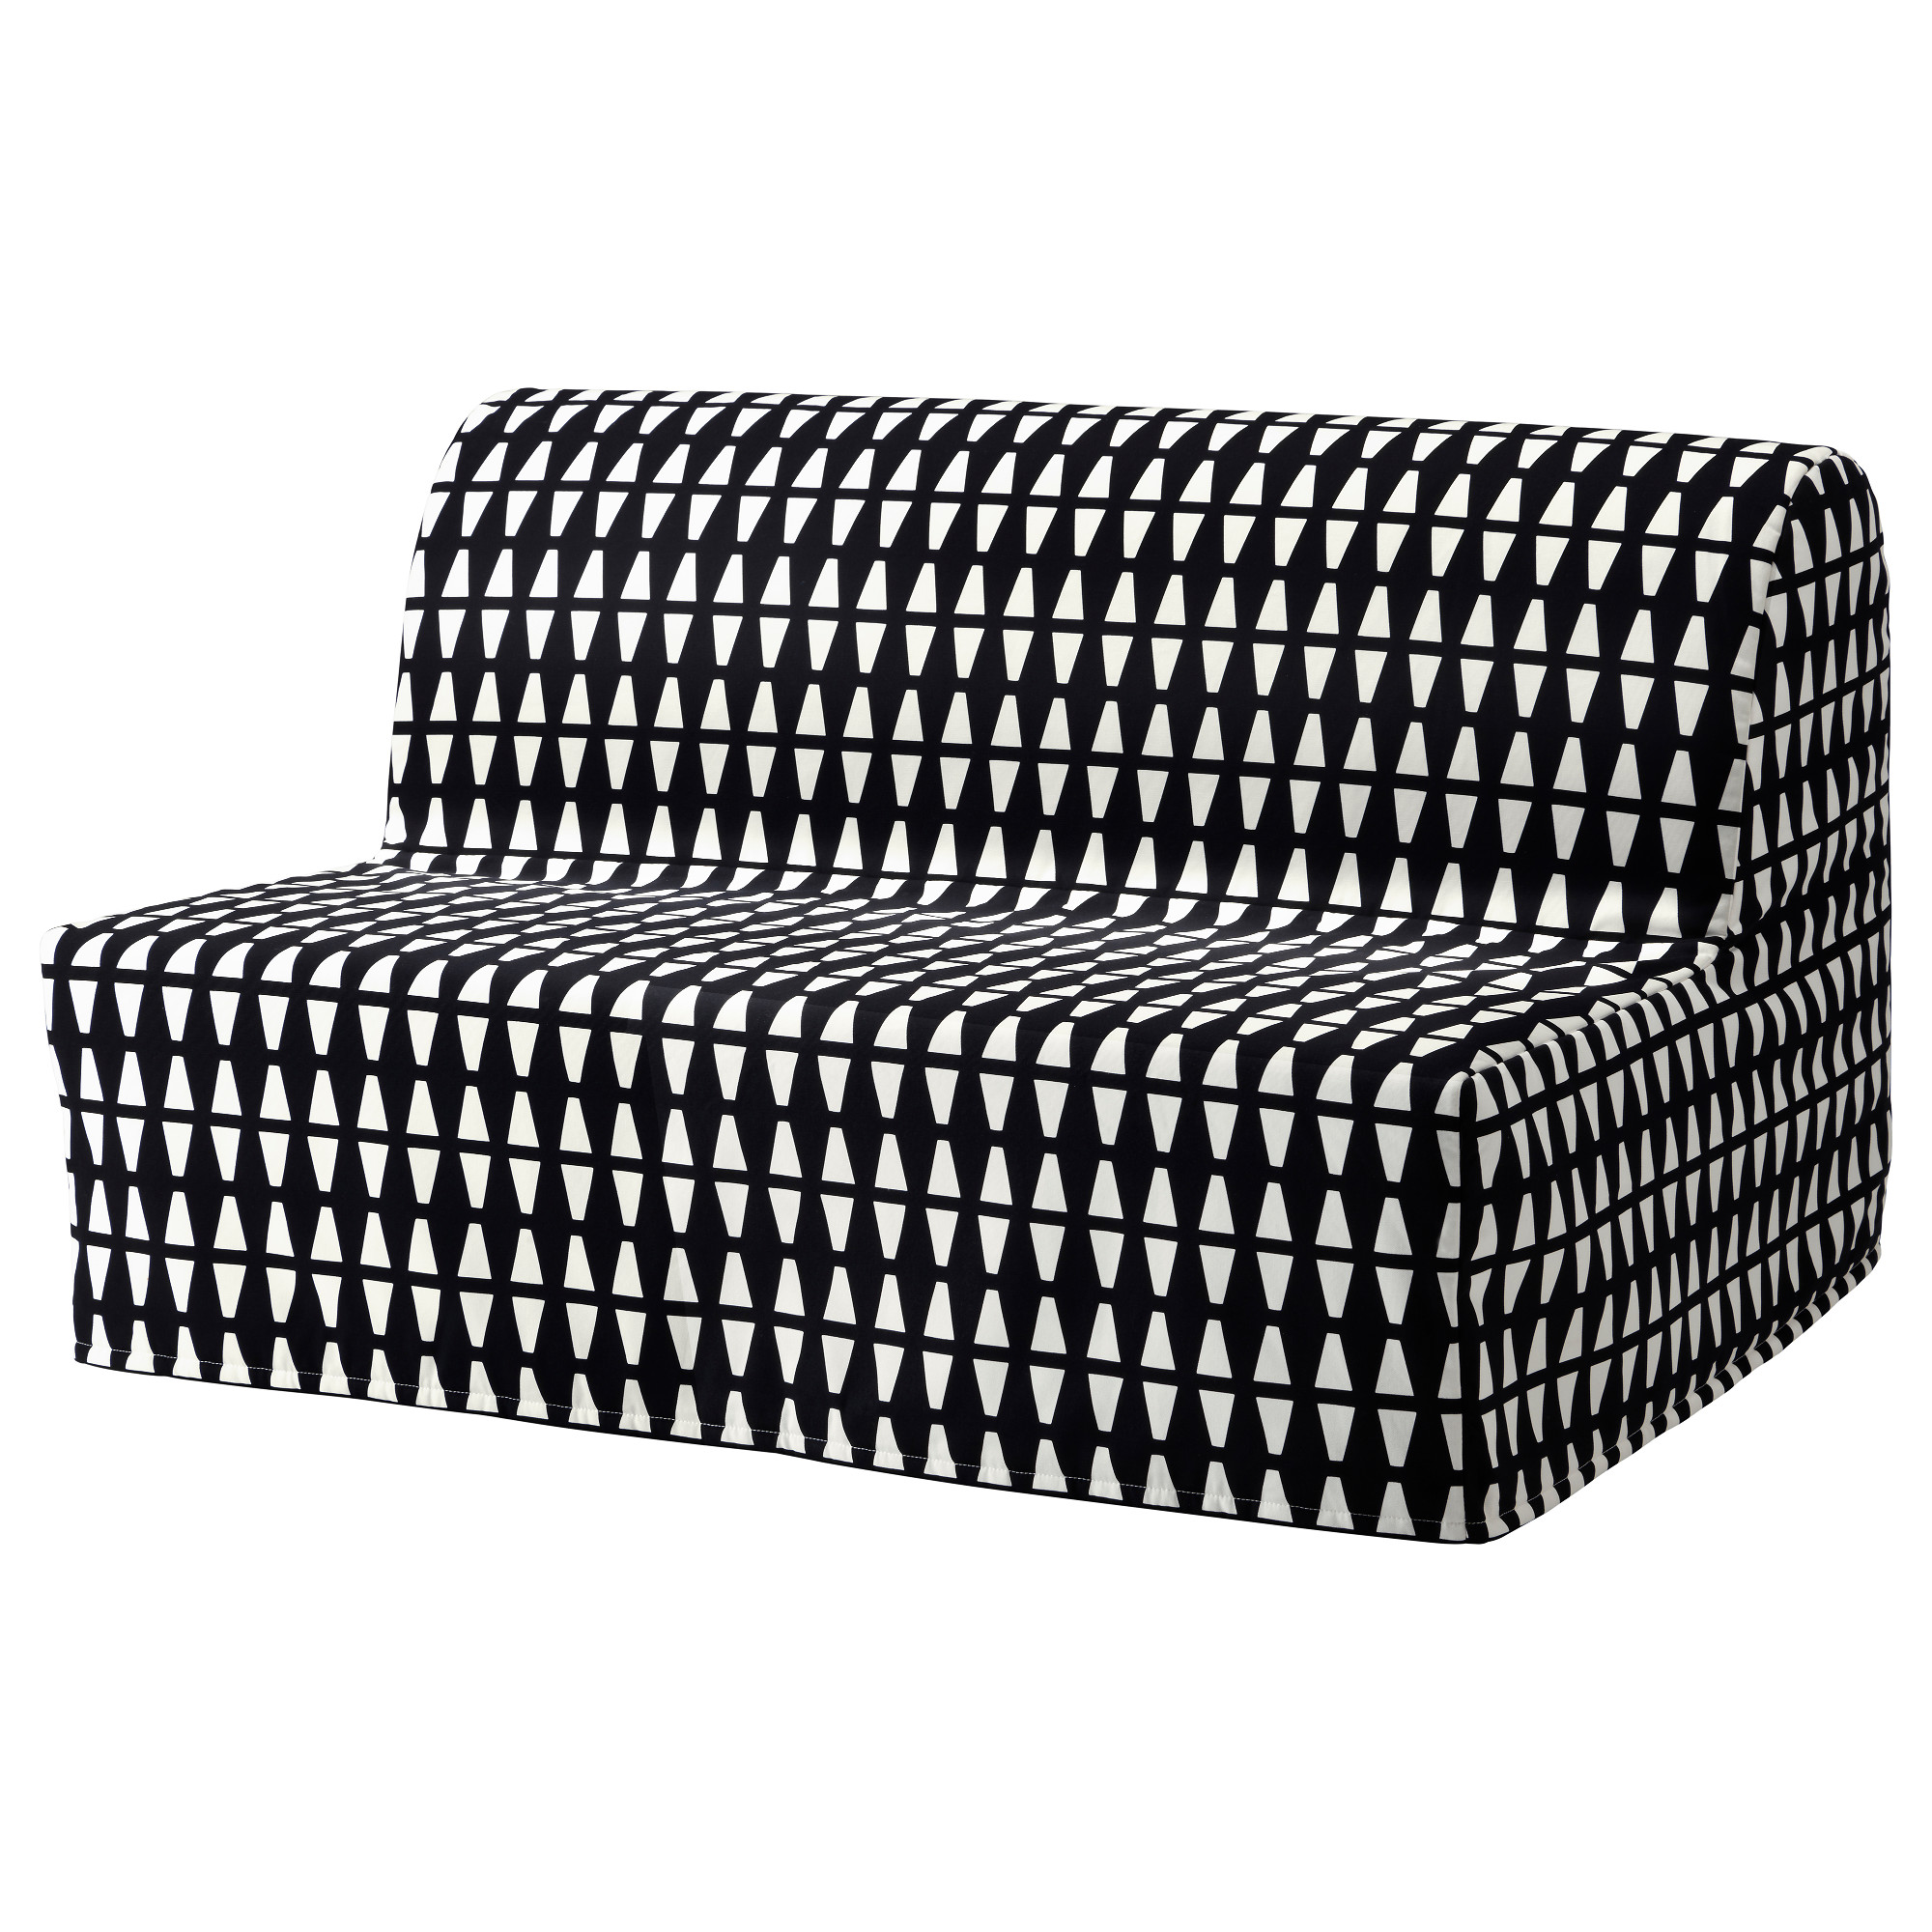 - LYCKSELE HÅVET - Two-seat Sofa-bed, Ebbarp Black/white IKEA Hong